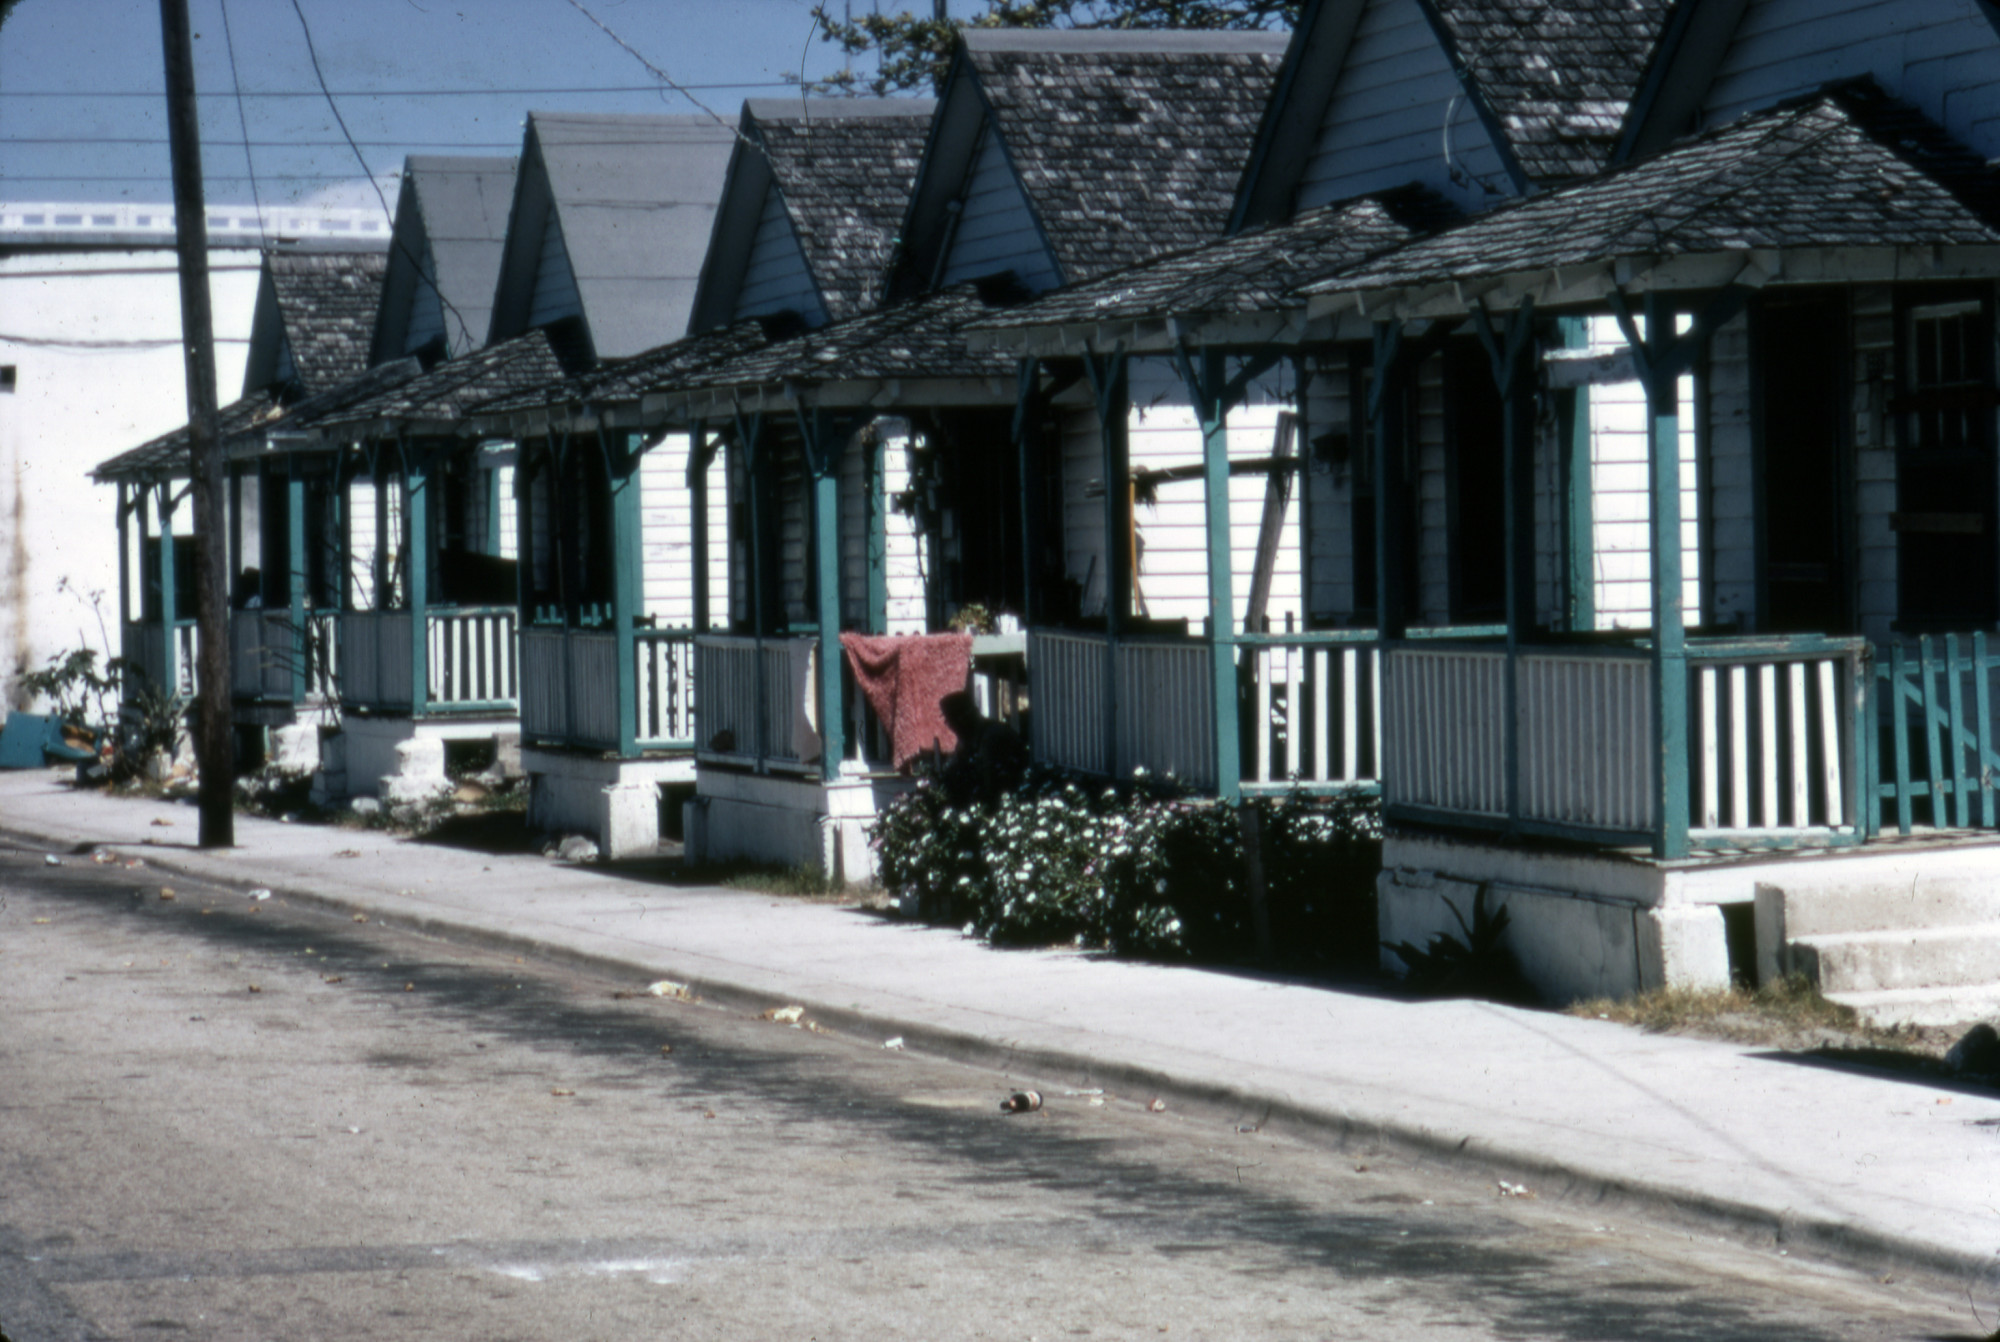 Shotgun houses in Overtown in 1995. (Courtesy of HistoryMiami Museum)